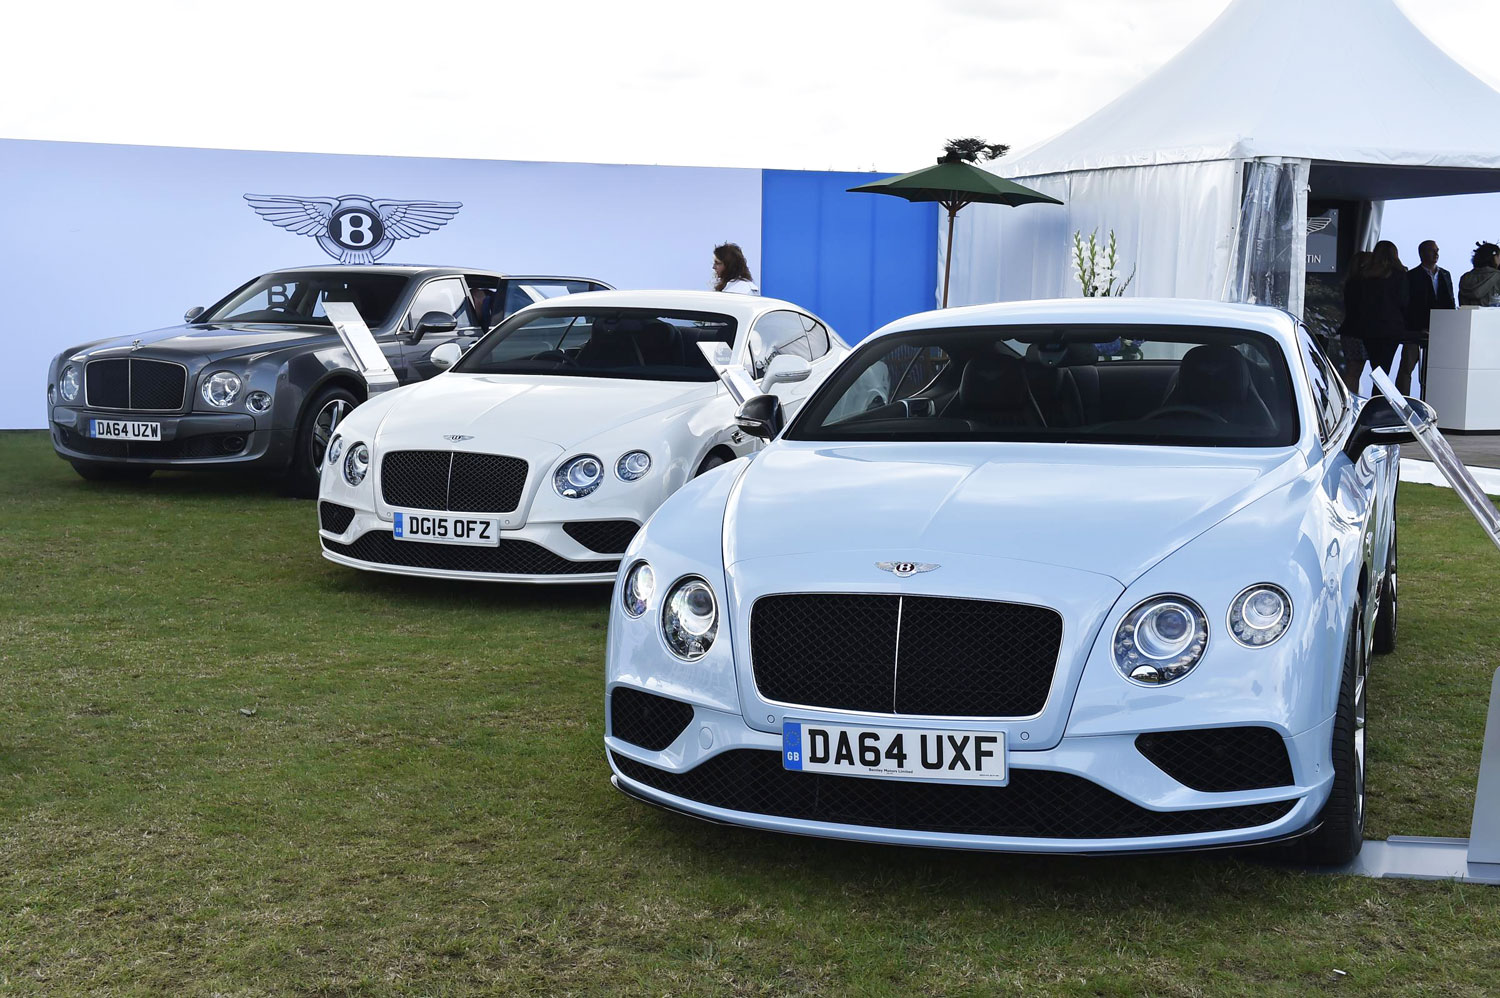 Some of the Bentley Motors at Salon Prive 2015